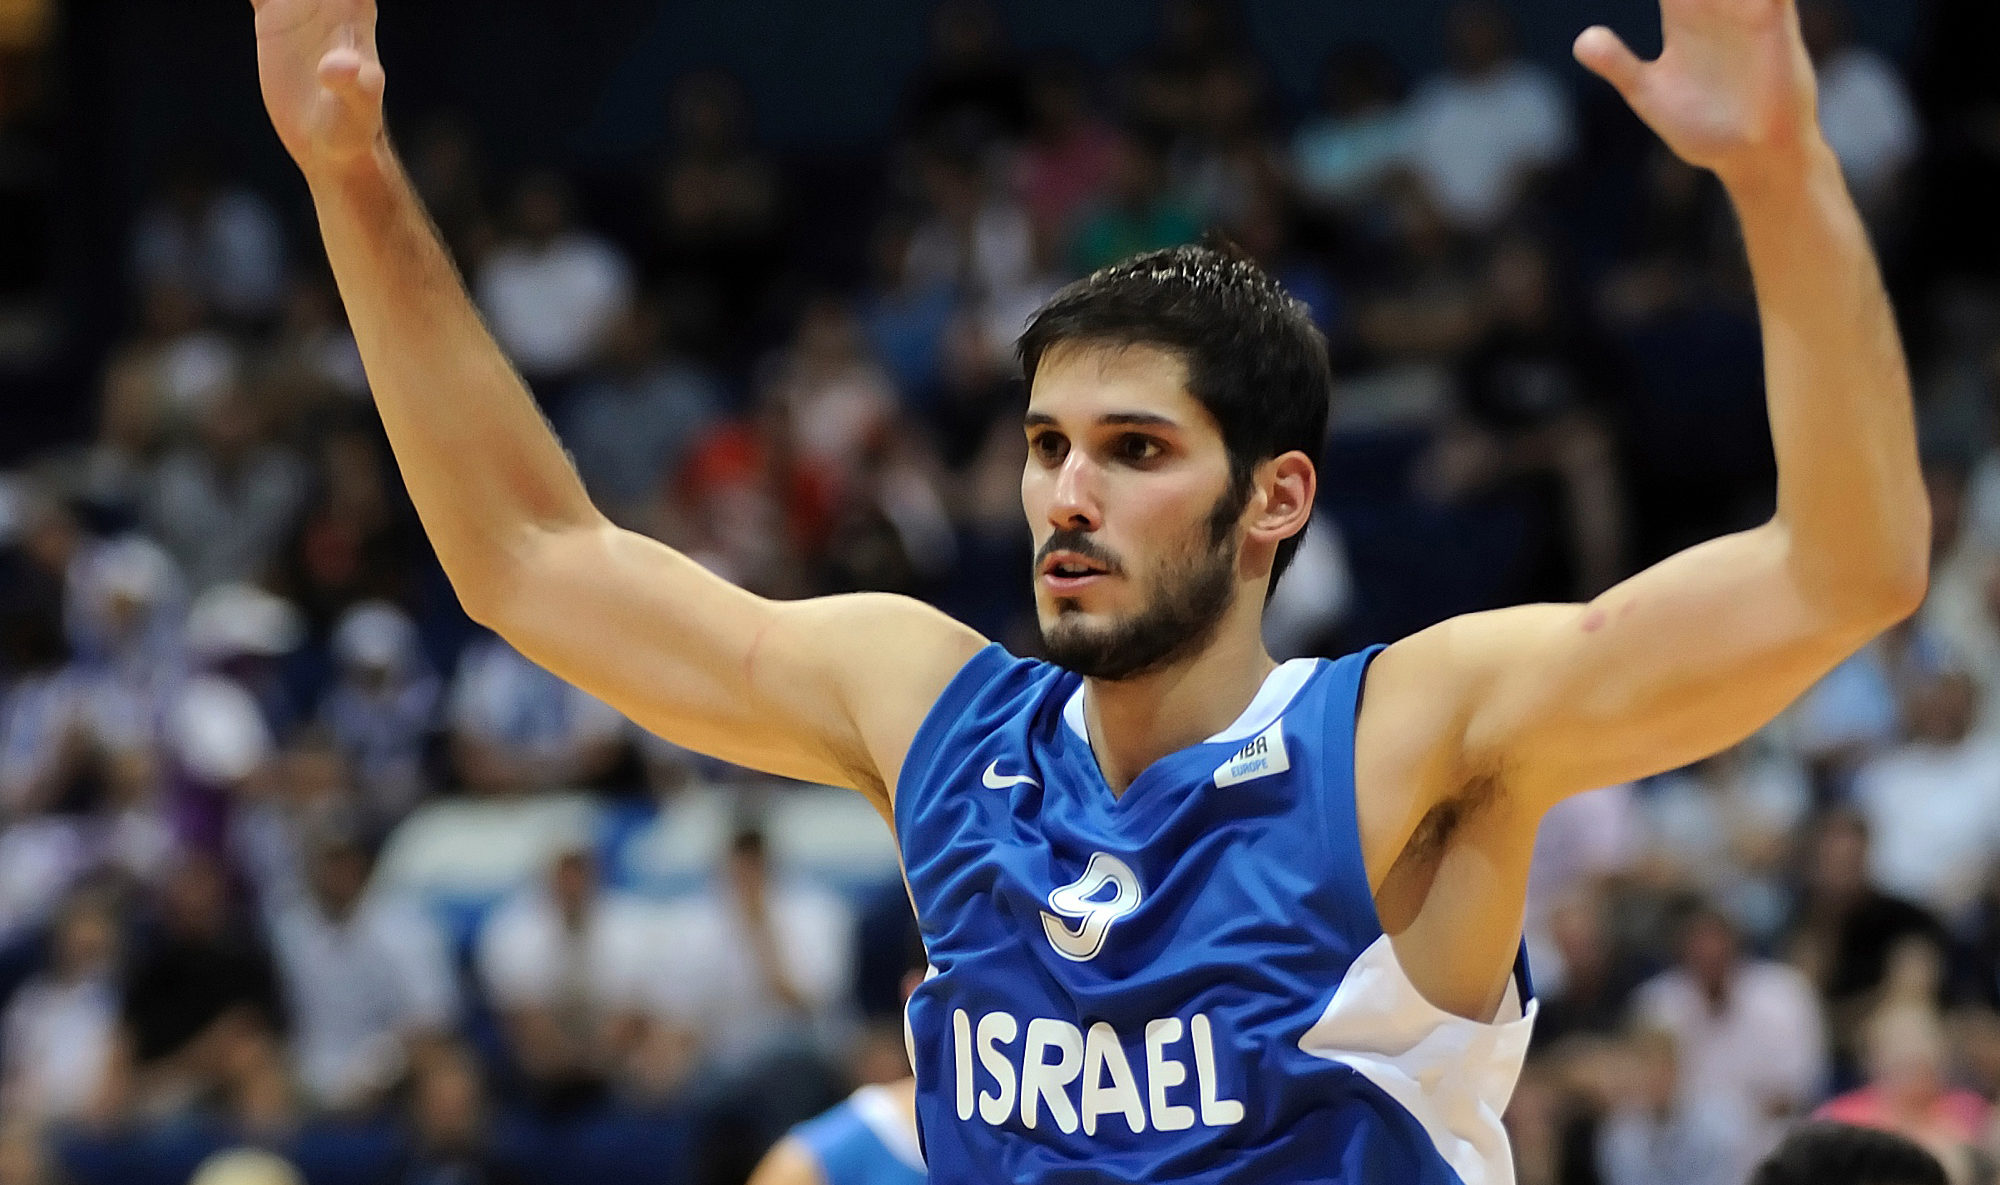 Omri Casspi on the court in an Israel jersey